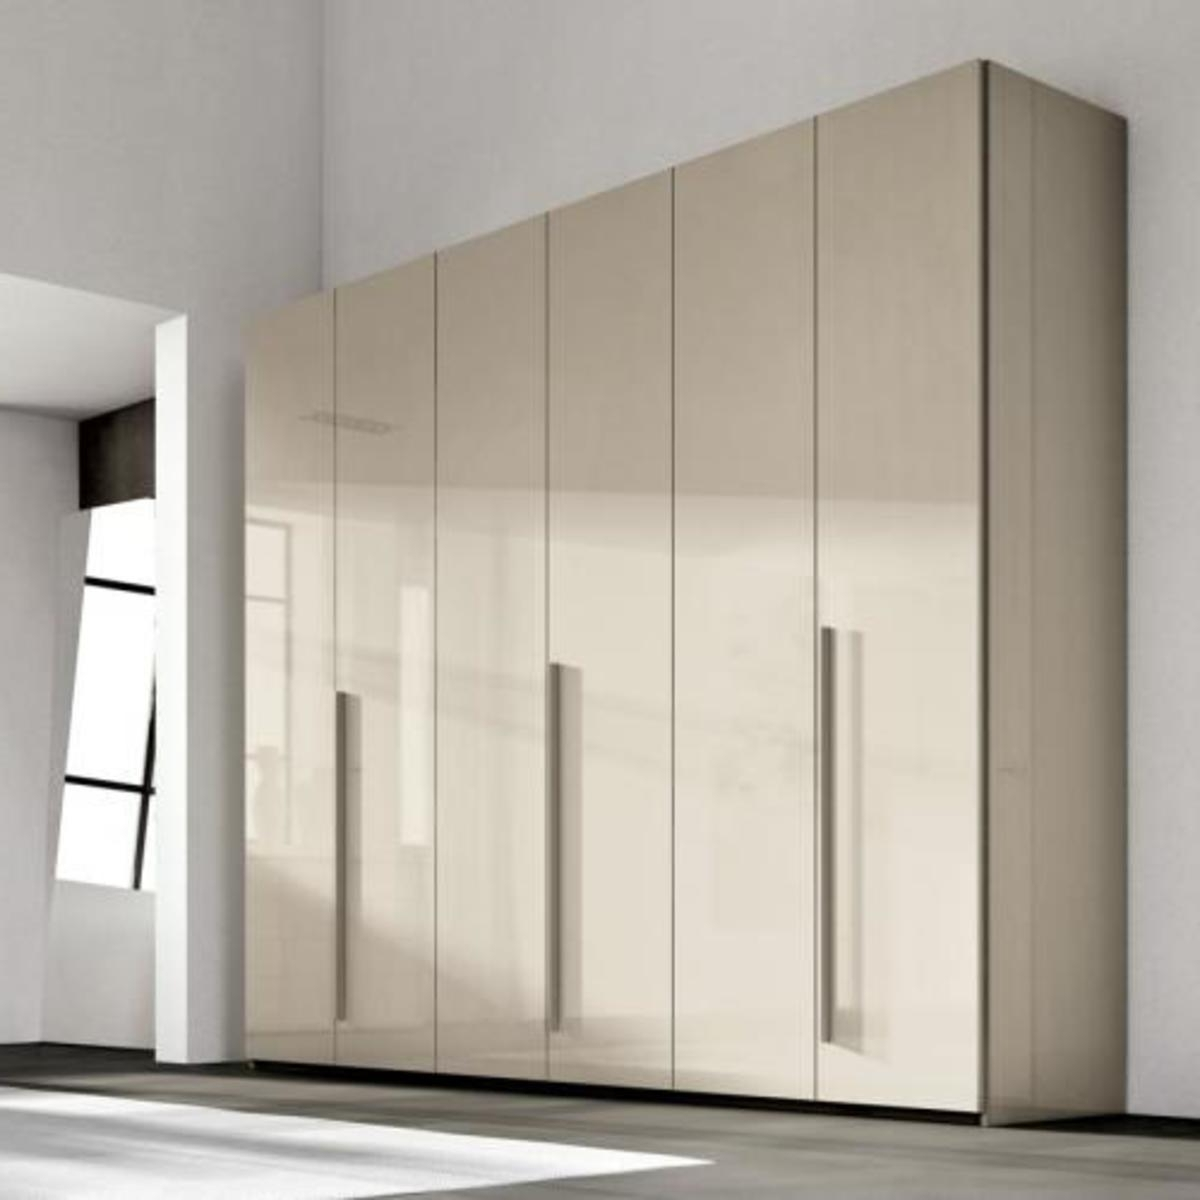 Robinsons Regarding 2018 High Gloss Wardrobes (View 13 of 15)